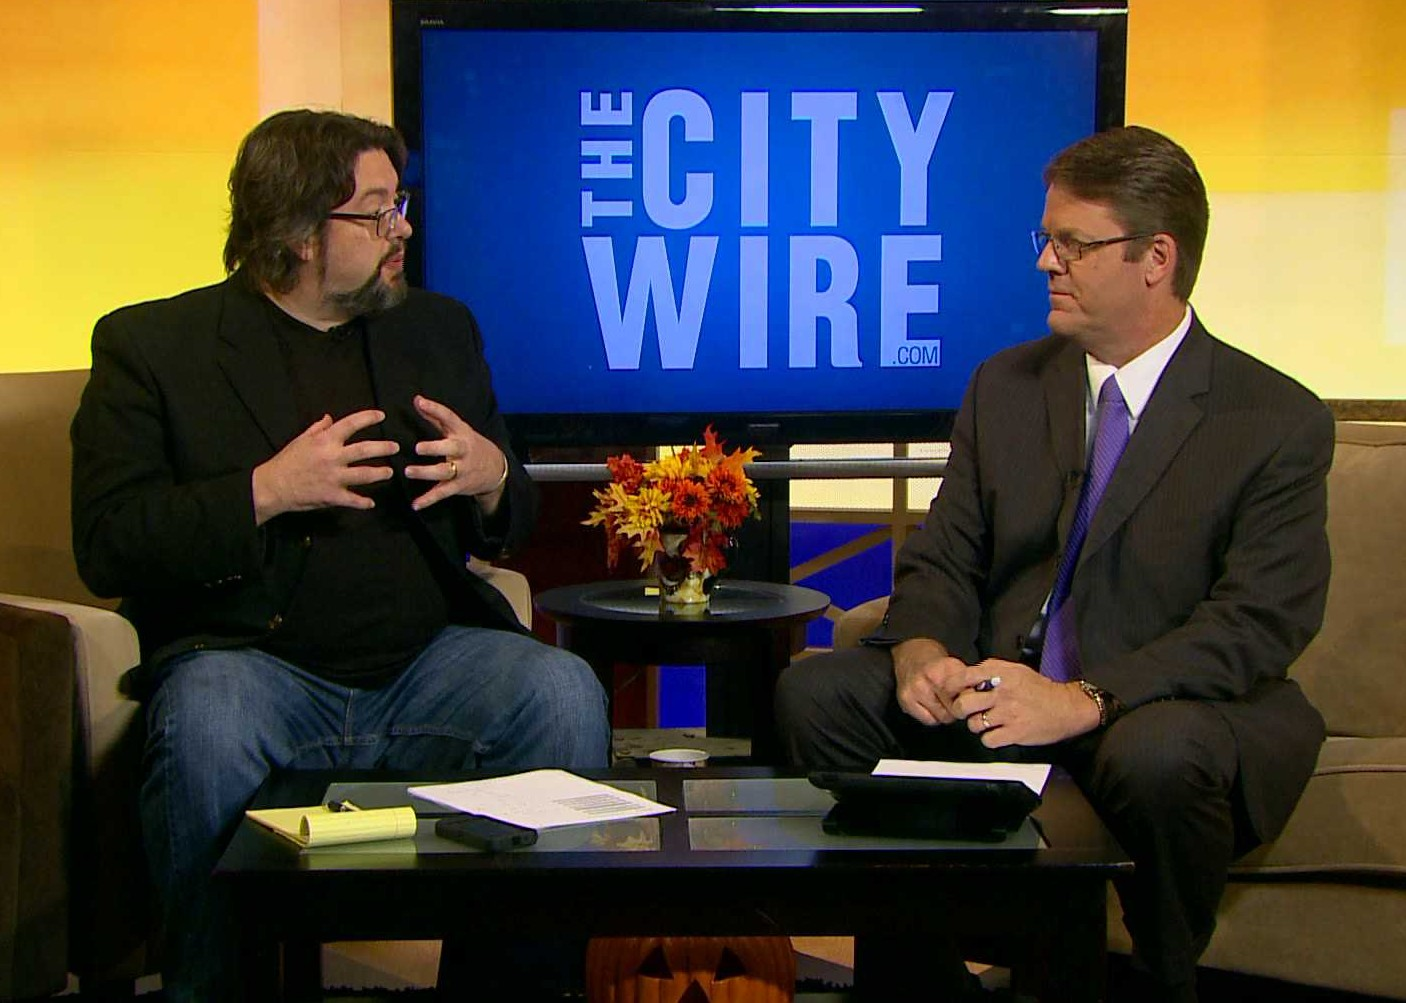 City Wire